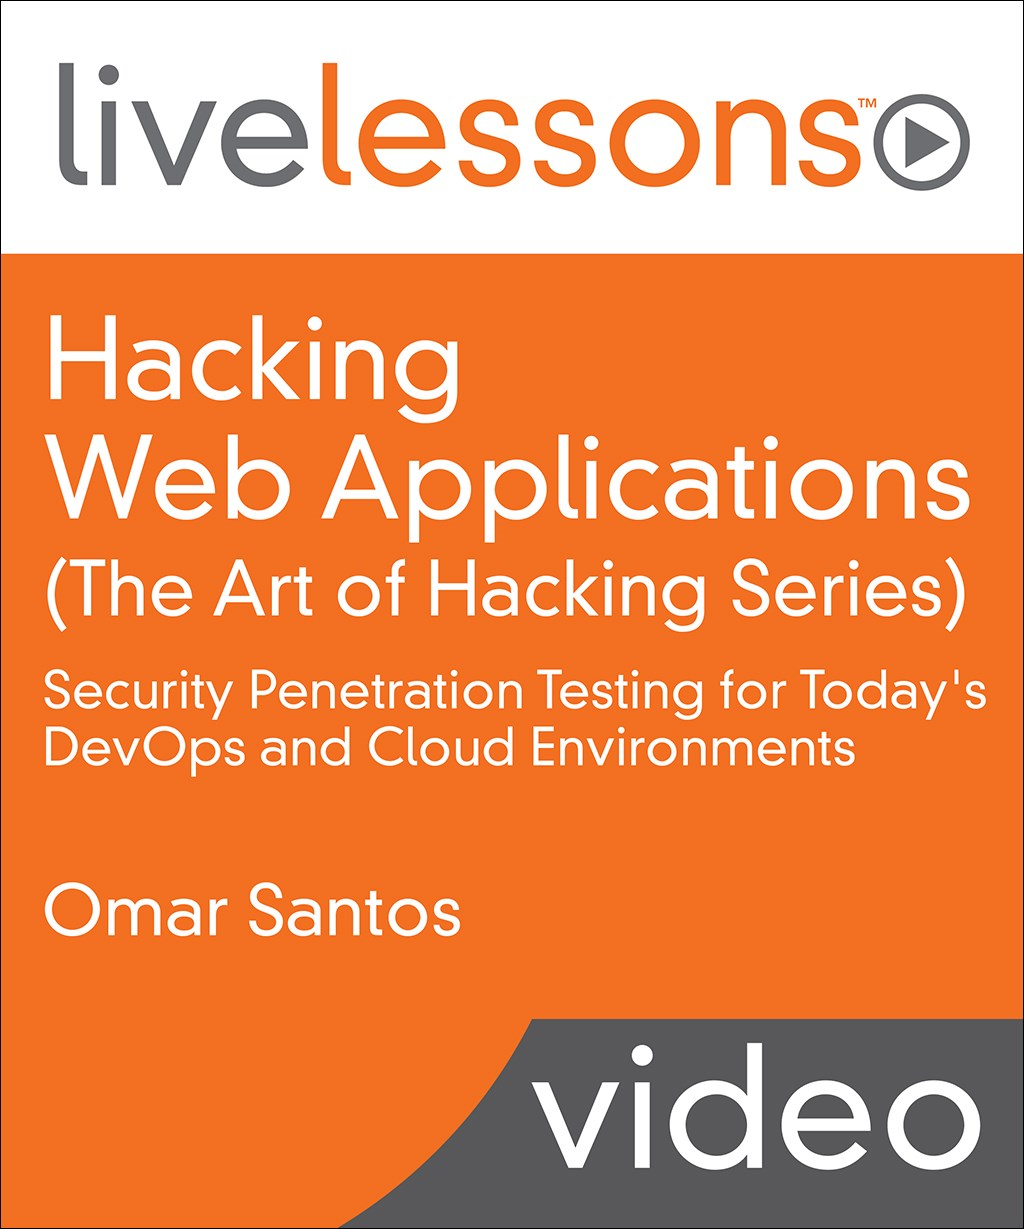 Hacking Web Applications (The Art of Hacking Series) LiveLessons